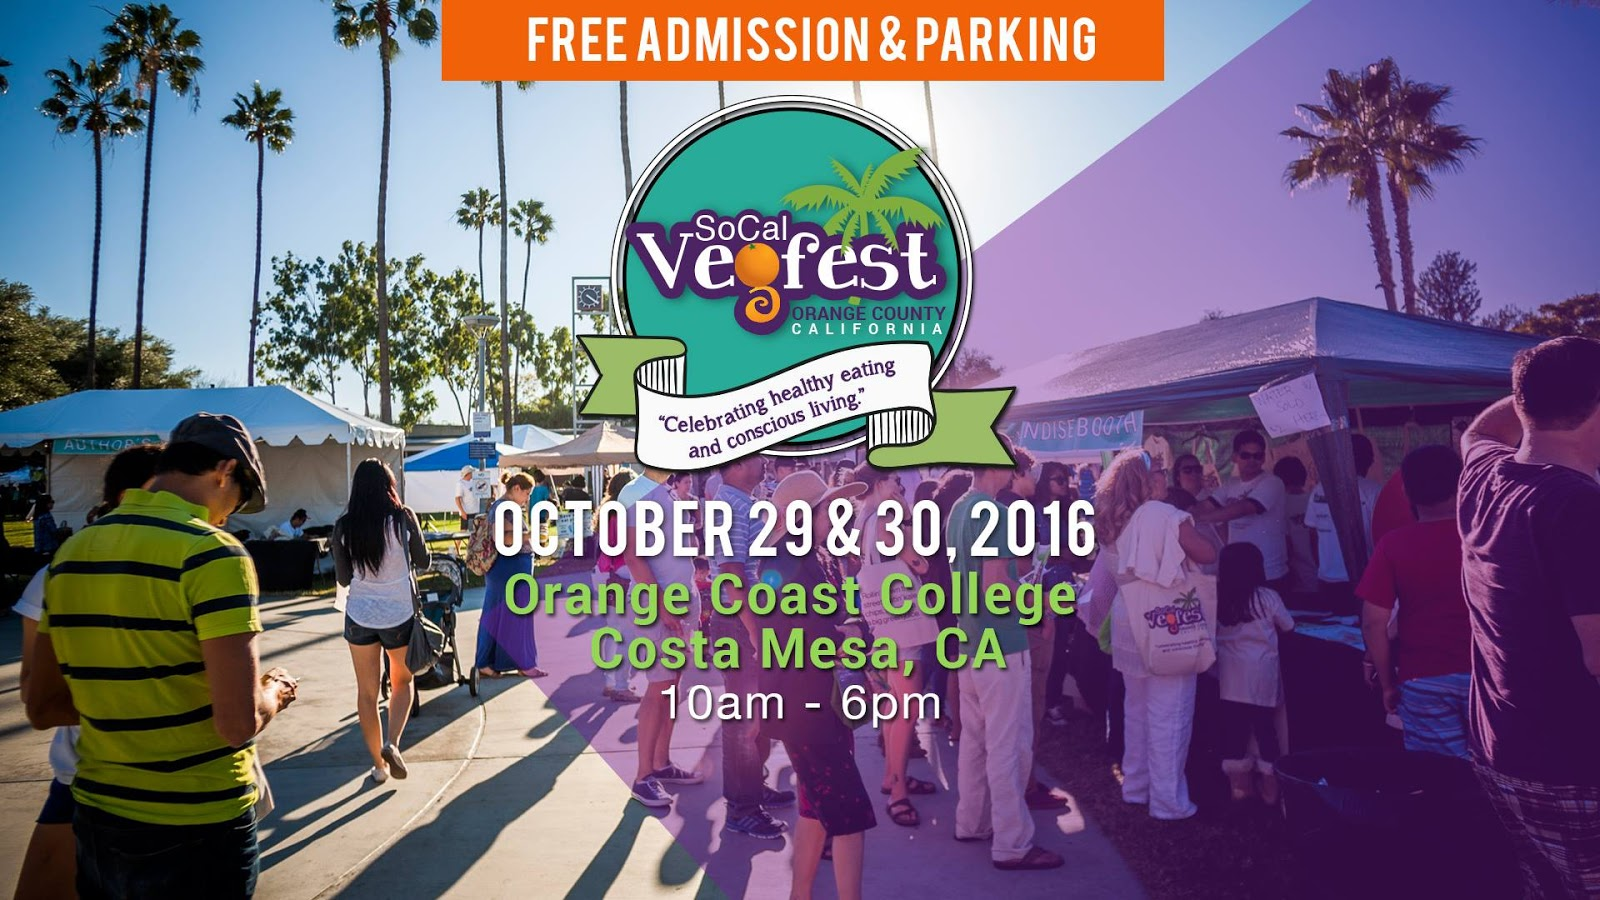 Oct. 29 - 30 | SoCal VegFest 2016 in Costa Mesa